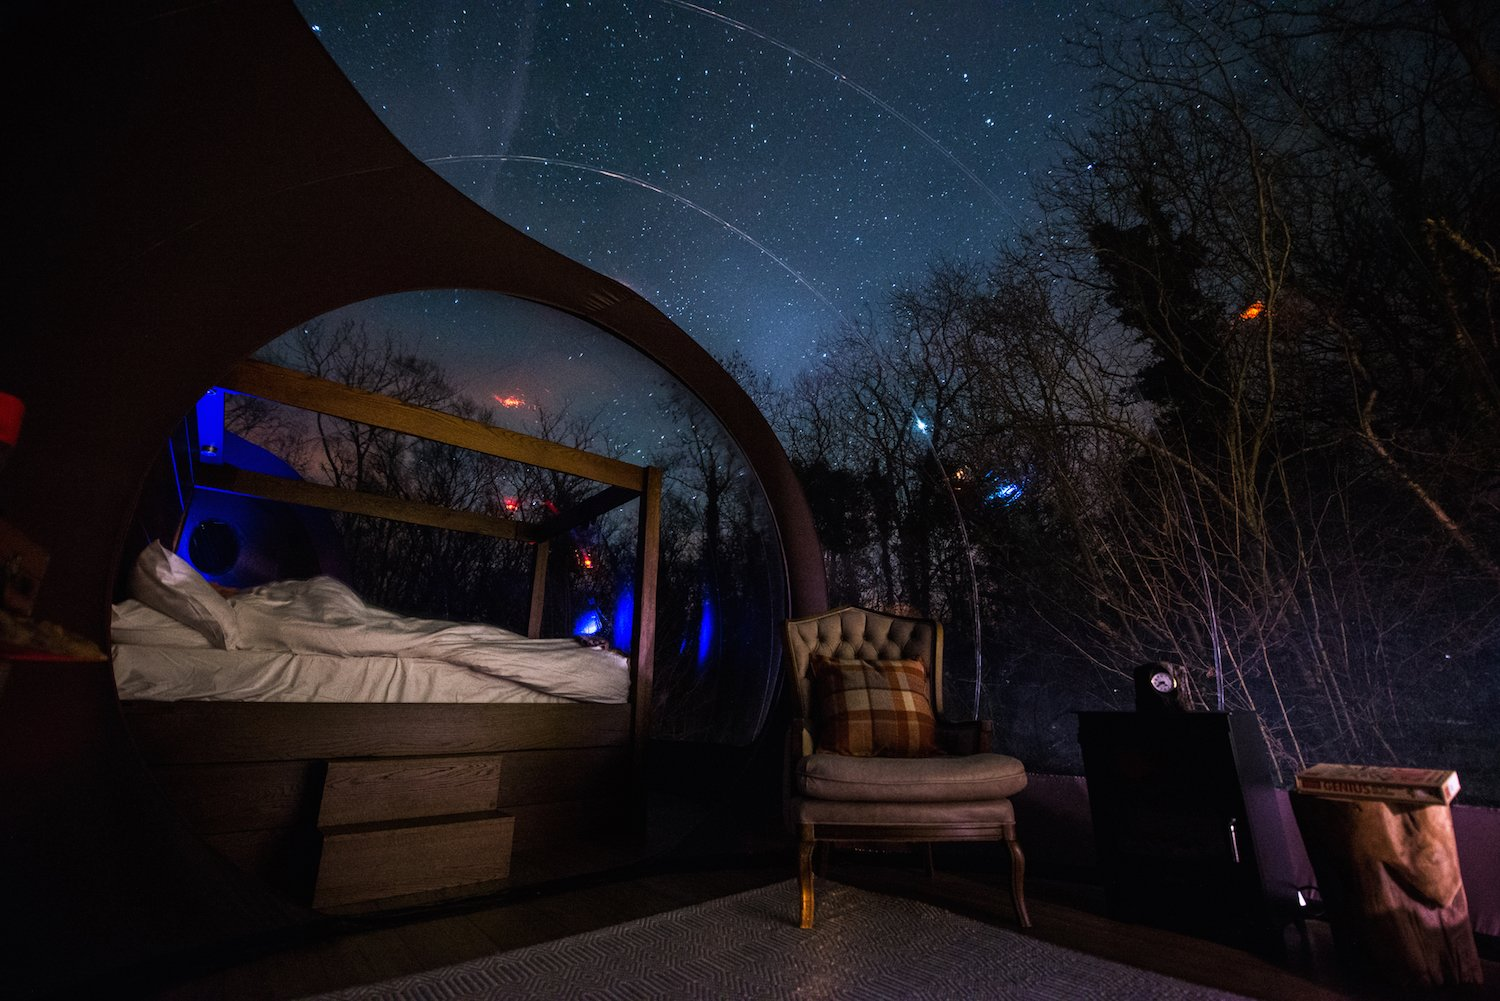 Bedroom, Bed, and Chair Sky views are best enjoyed January to March when visibility of the Milky Way is at its best.  Enchanting Bubble Domes in the Irish Woods